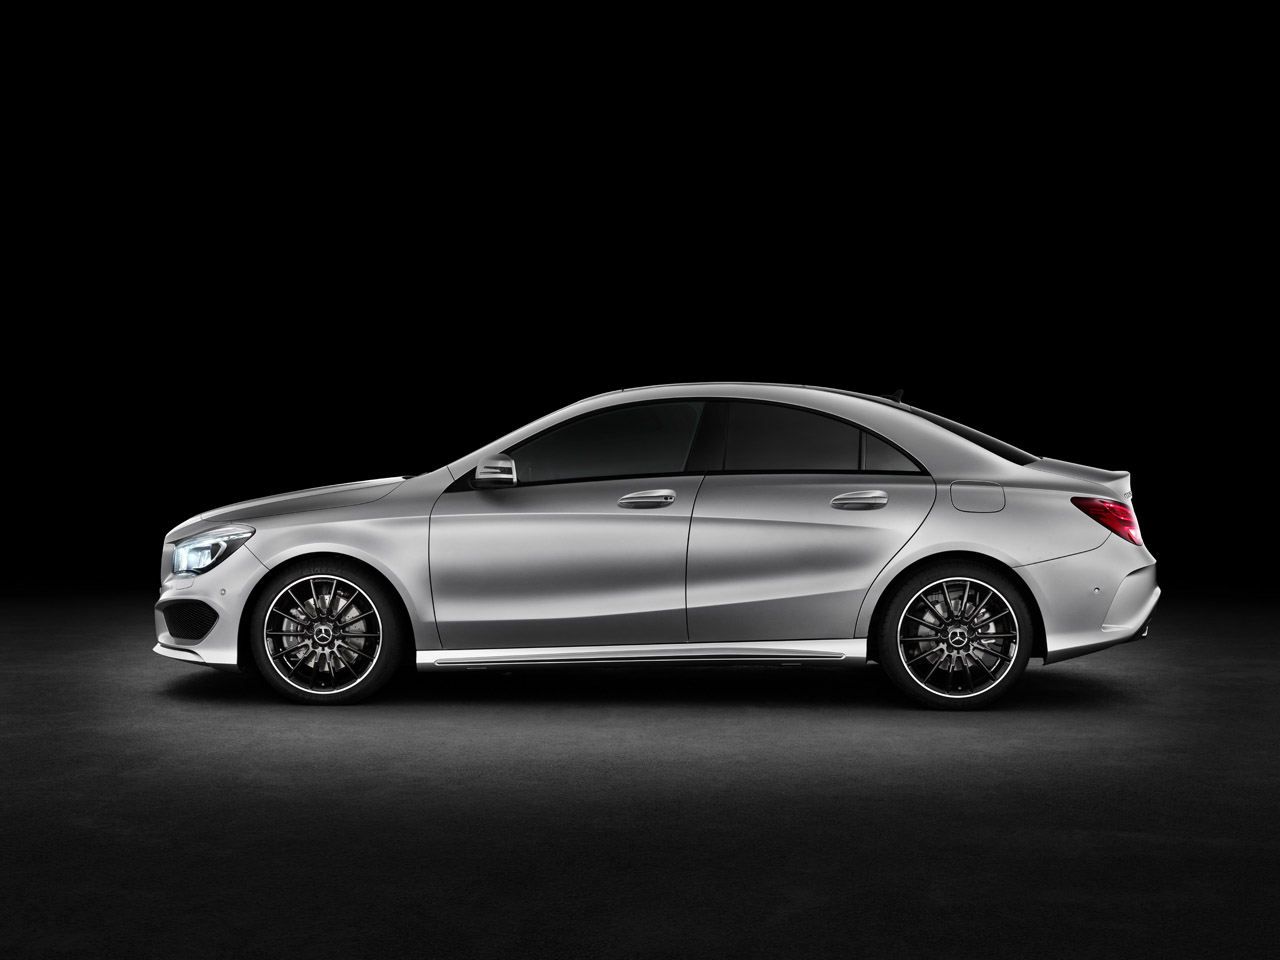 2014 mercedes benz cla250 photo gallery autoblog for Mercedes benz cla 250 specs